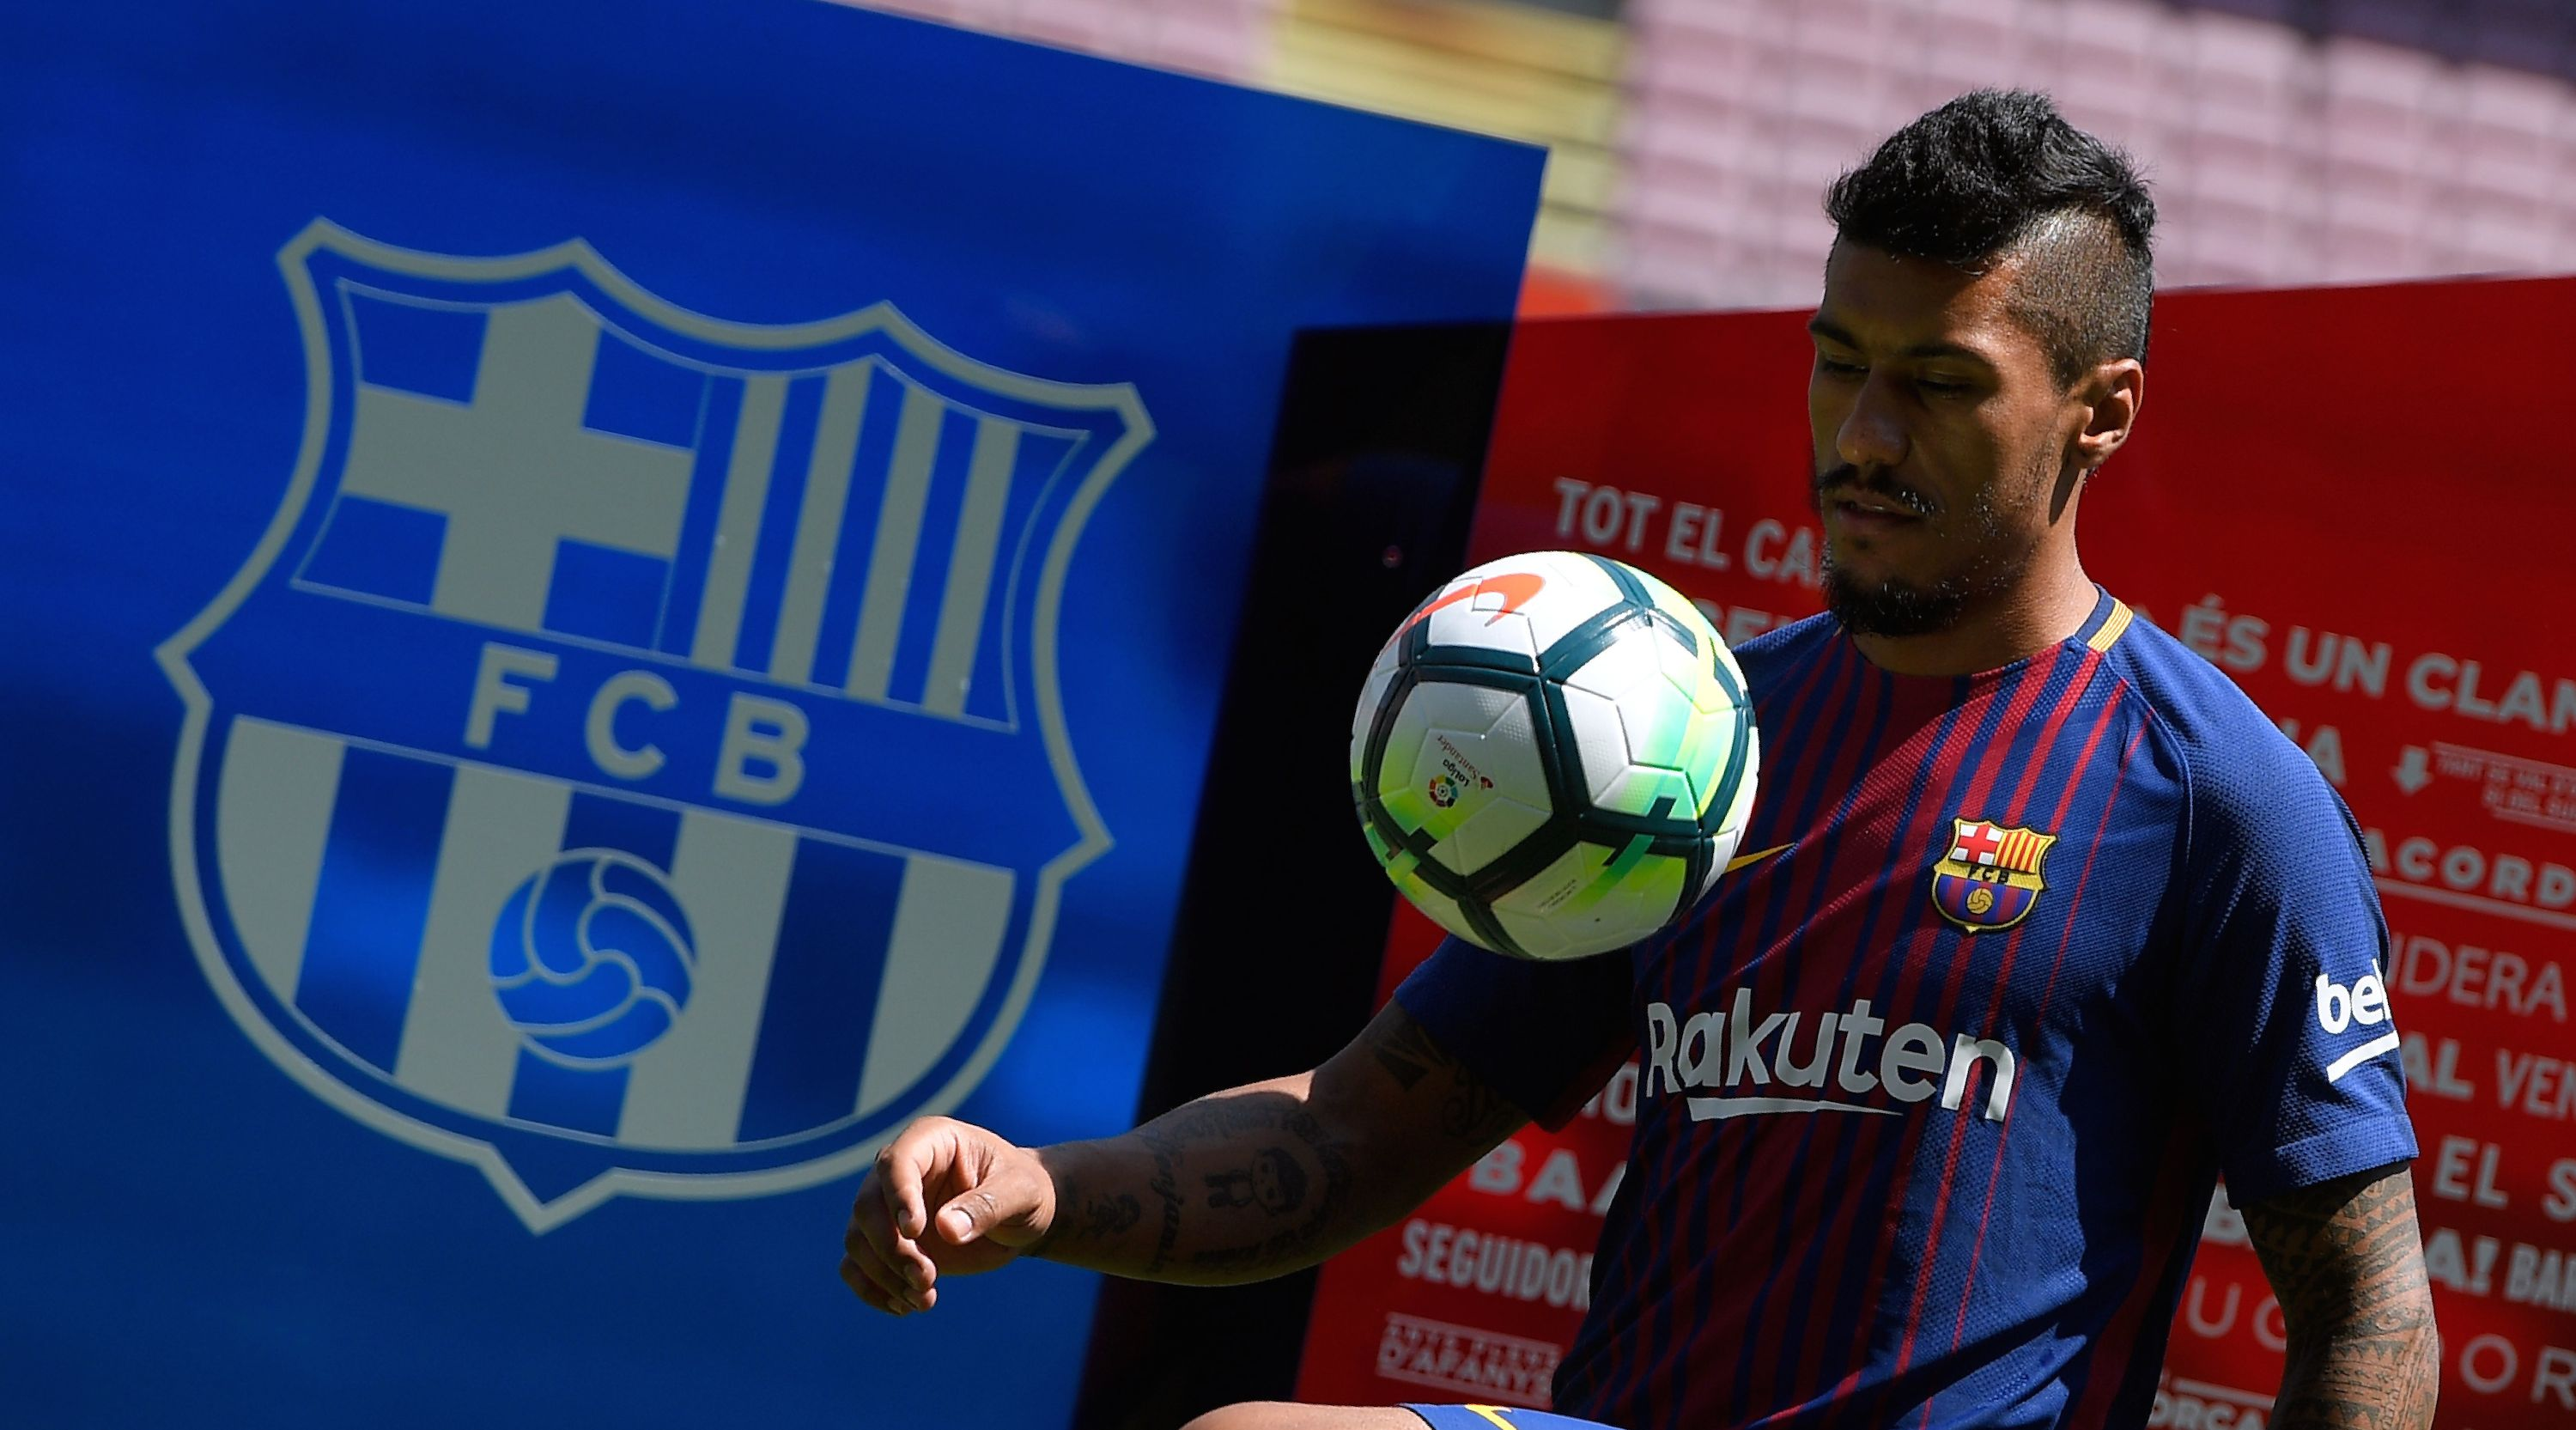 Barcelona's new Brazilian football player Paulinho Bezerra controls a ball during his official presentation, after signing his new contract with the Catalan club at the Camp Nou stadium in Barcelona on August 17, 2017. / AFP PHOTO / LLUIS GENE (Photo credit should read LLUIS GENE/AFP/Getty Images)